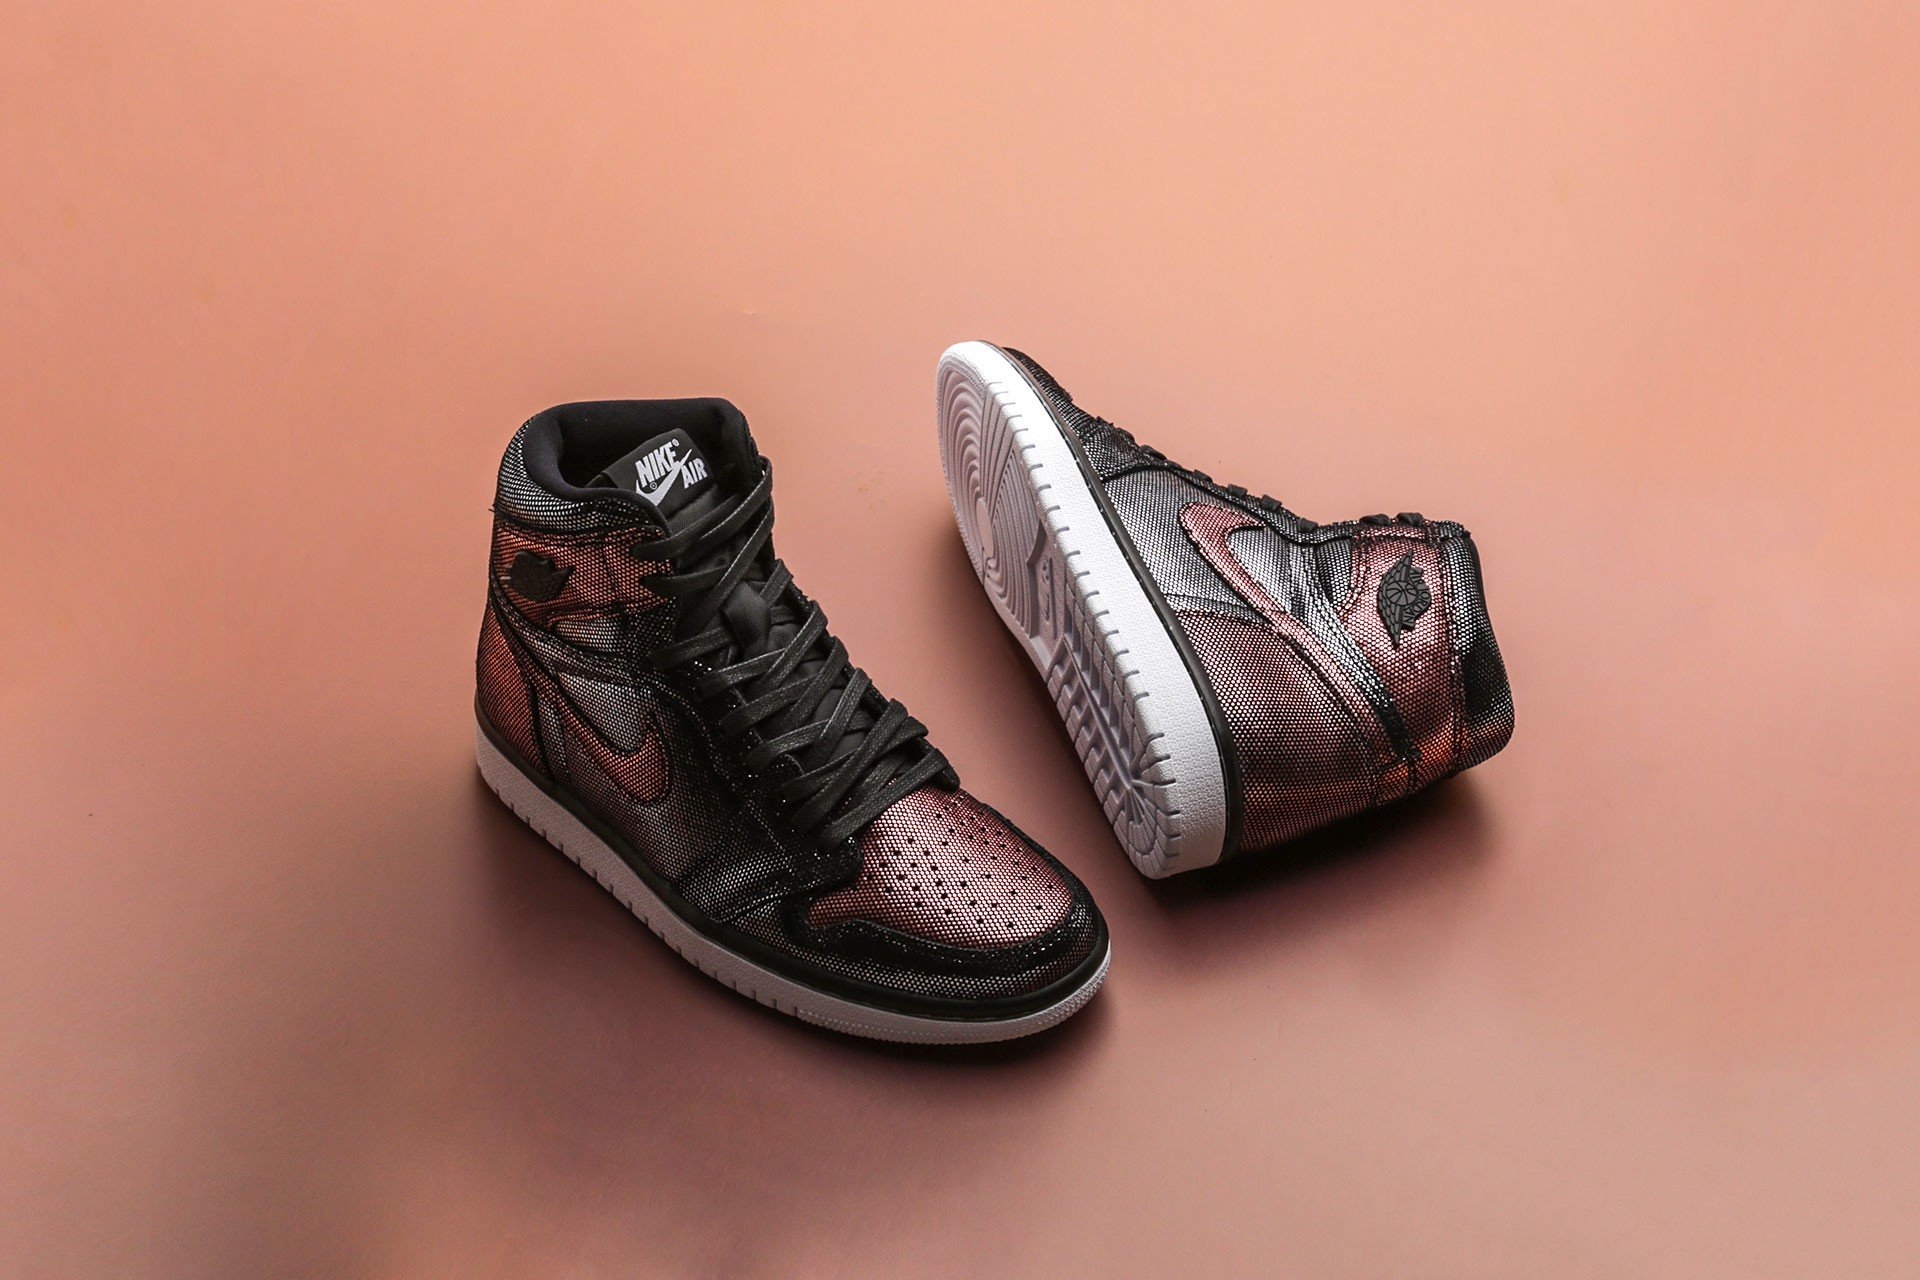 Nike Jordan 1 Retro High Fearless Metallic 'Rose Gold' CU6690-006